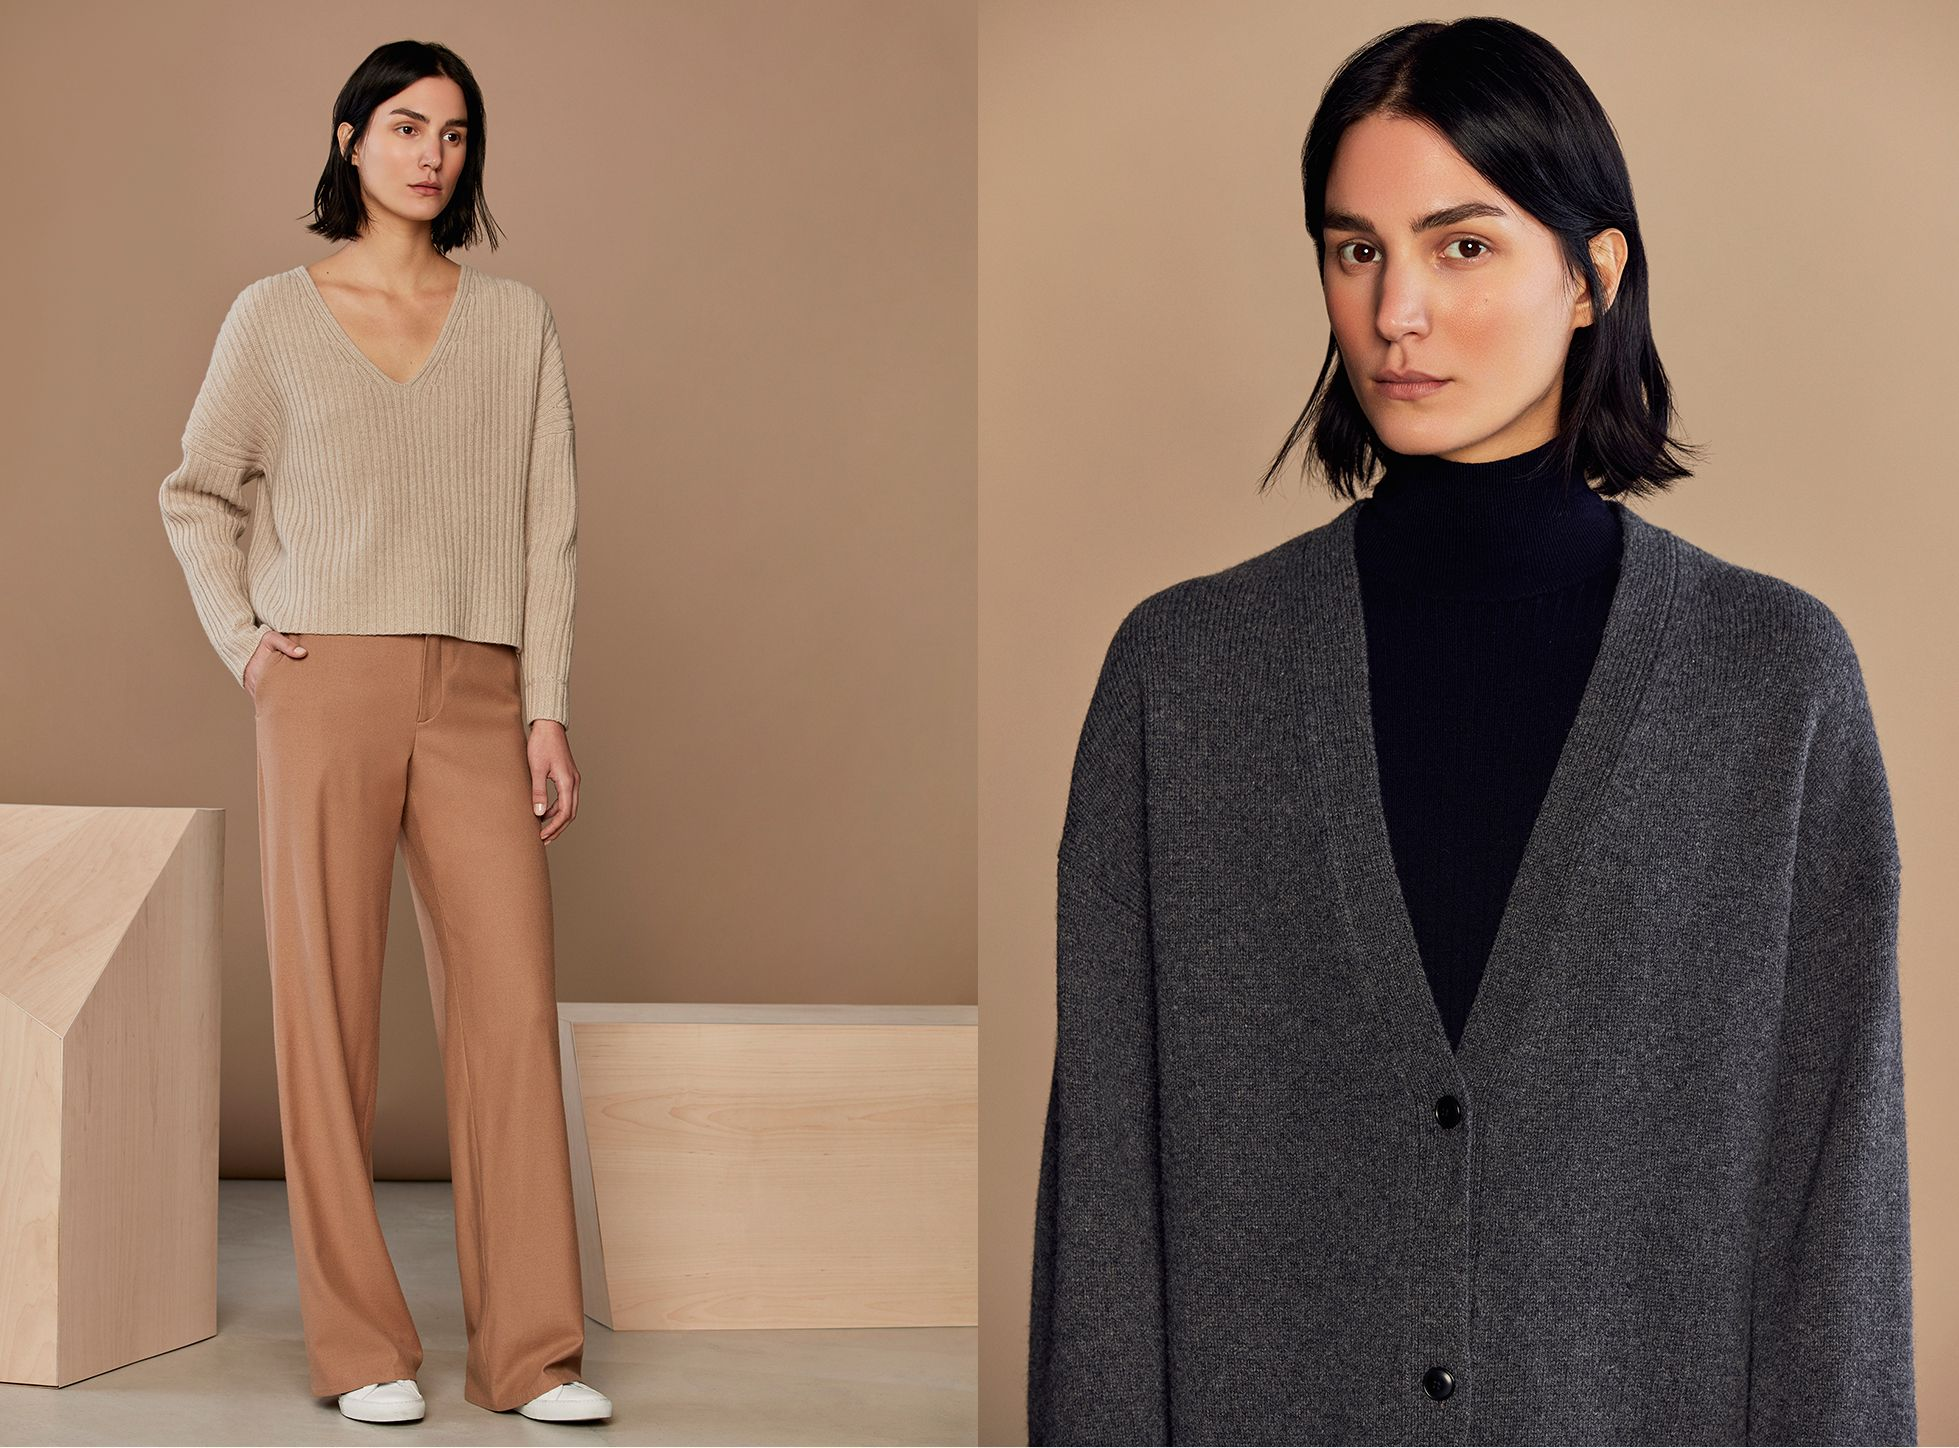 Ribbed Wool Cashmere Sweaters | Everlane | Girl fashion